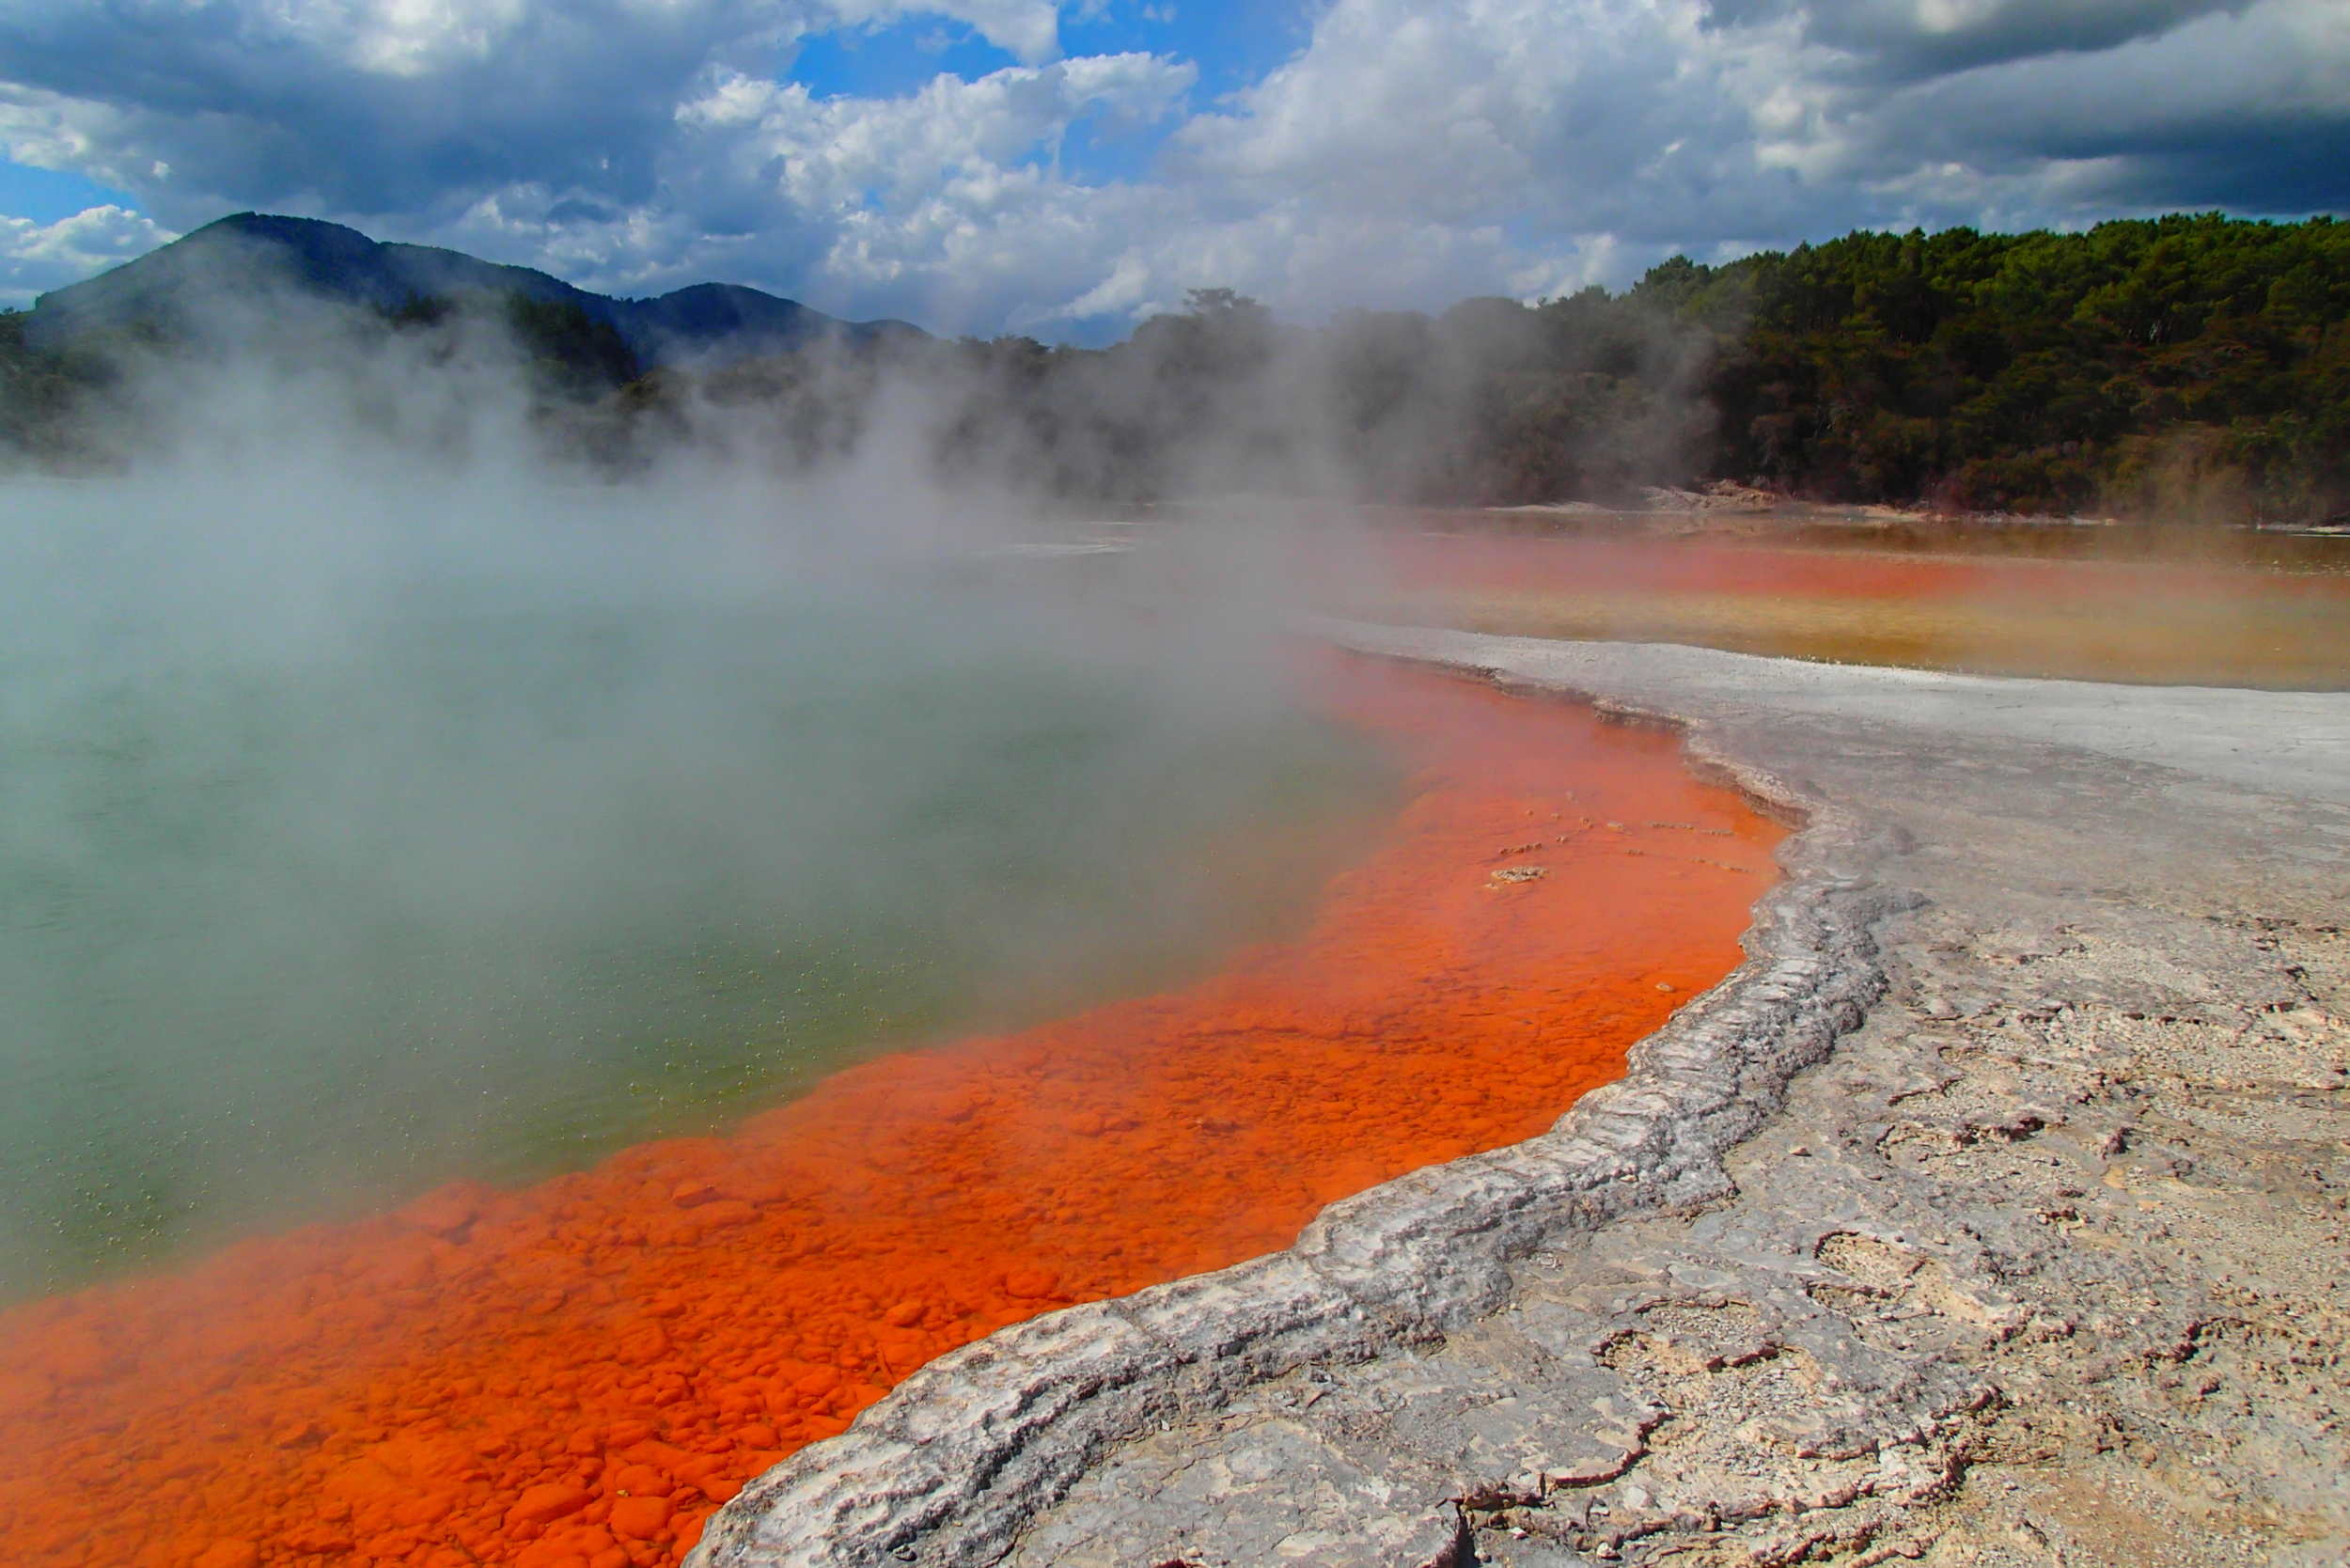 Hot springs, hot colors